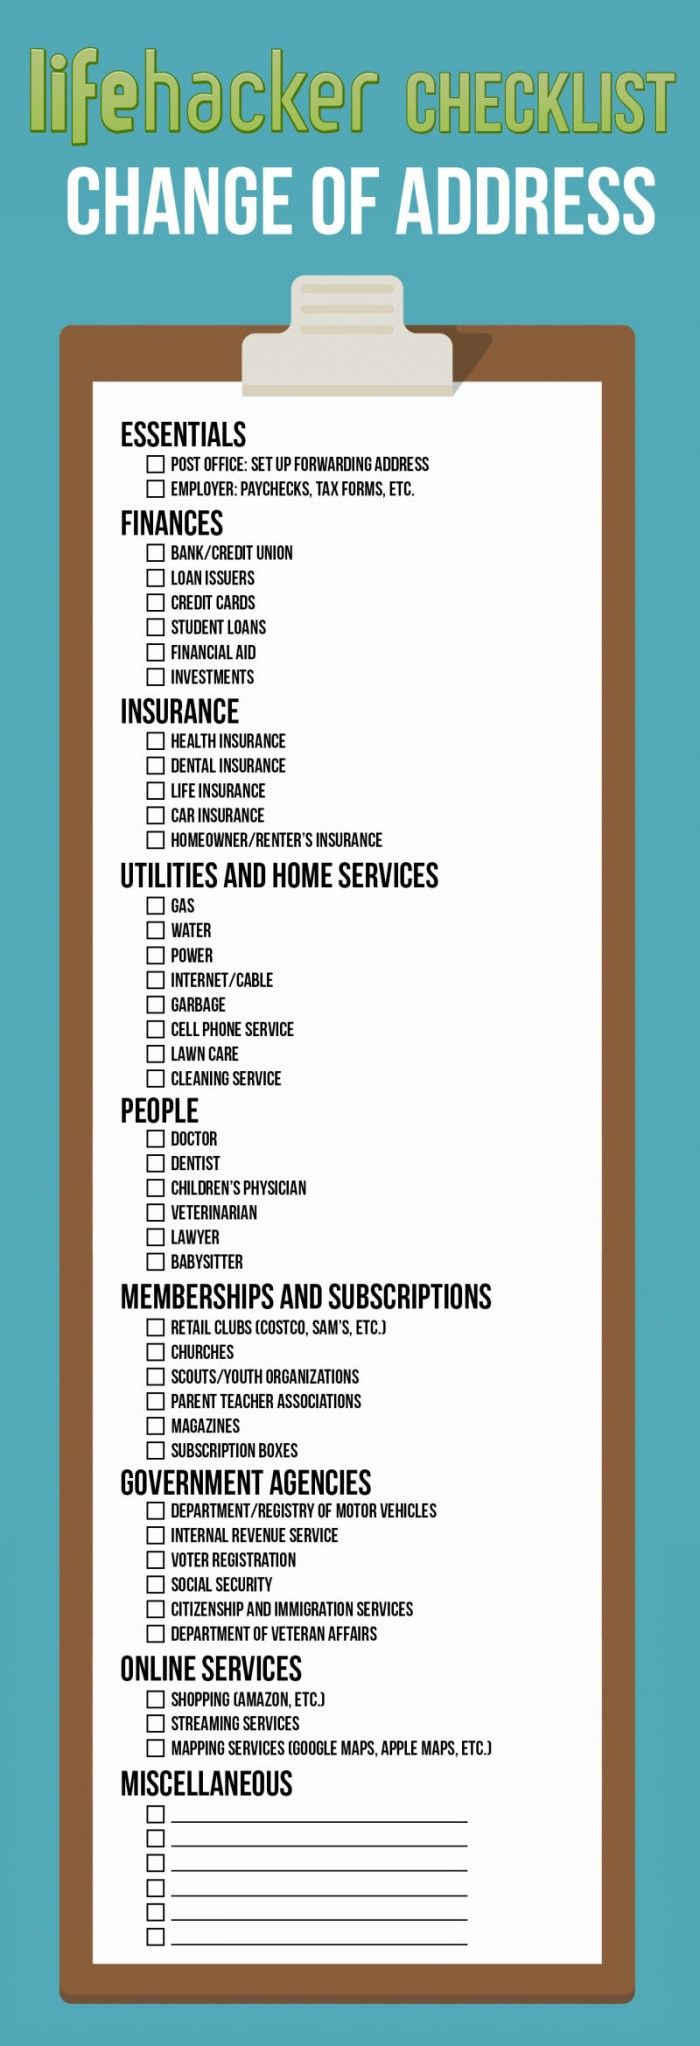 You Guide to Changing Your Address [checklist] [Infographic]